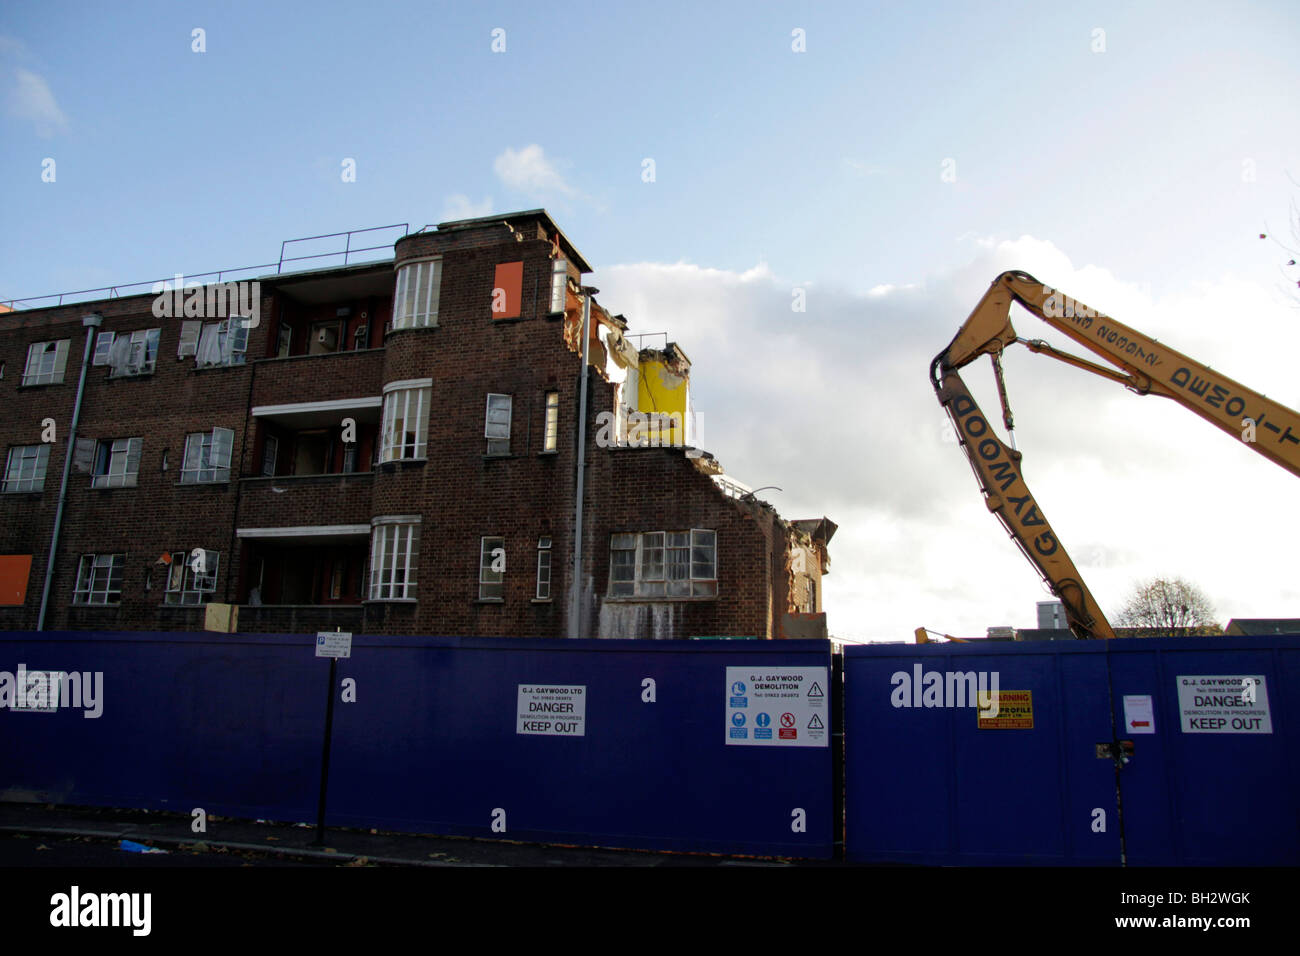 Demolition of a council estate in Hackney, East London Stock Photo